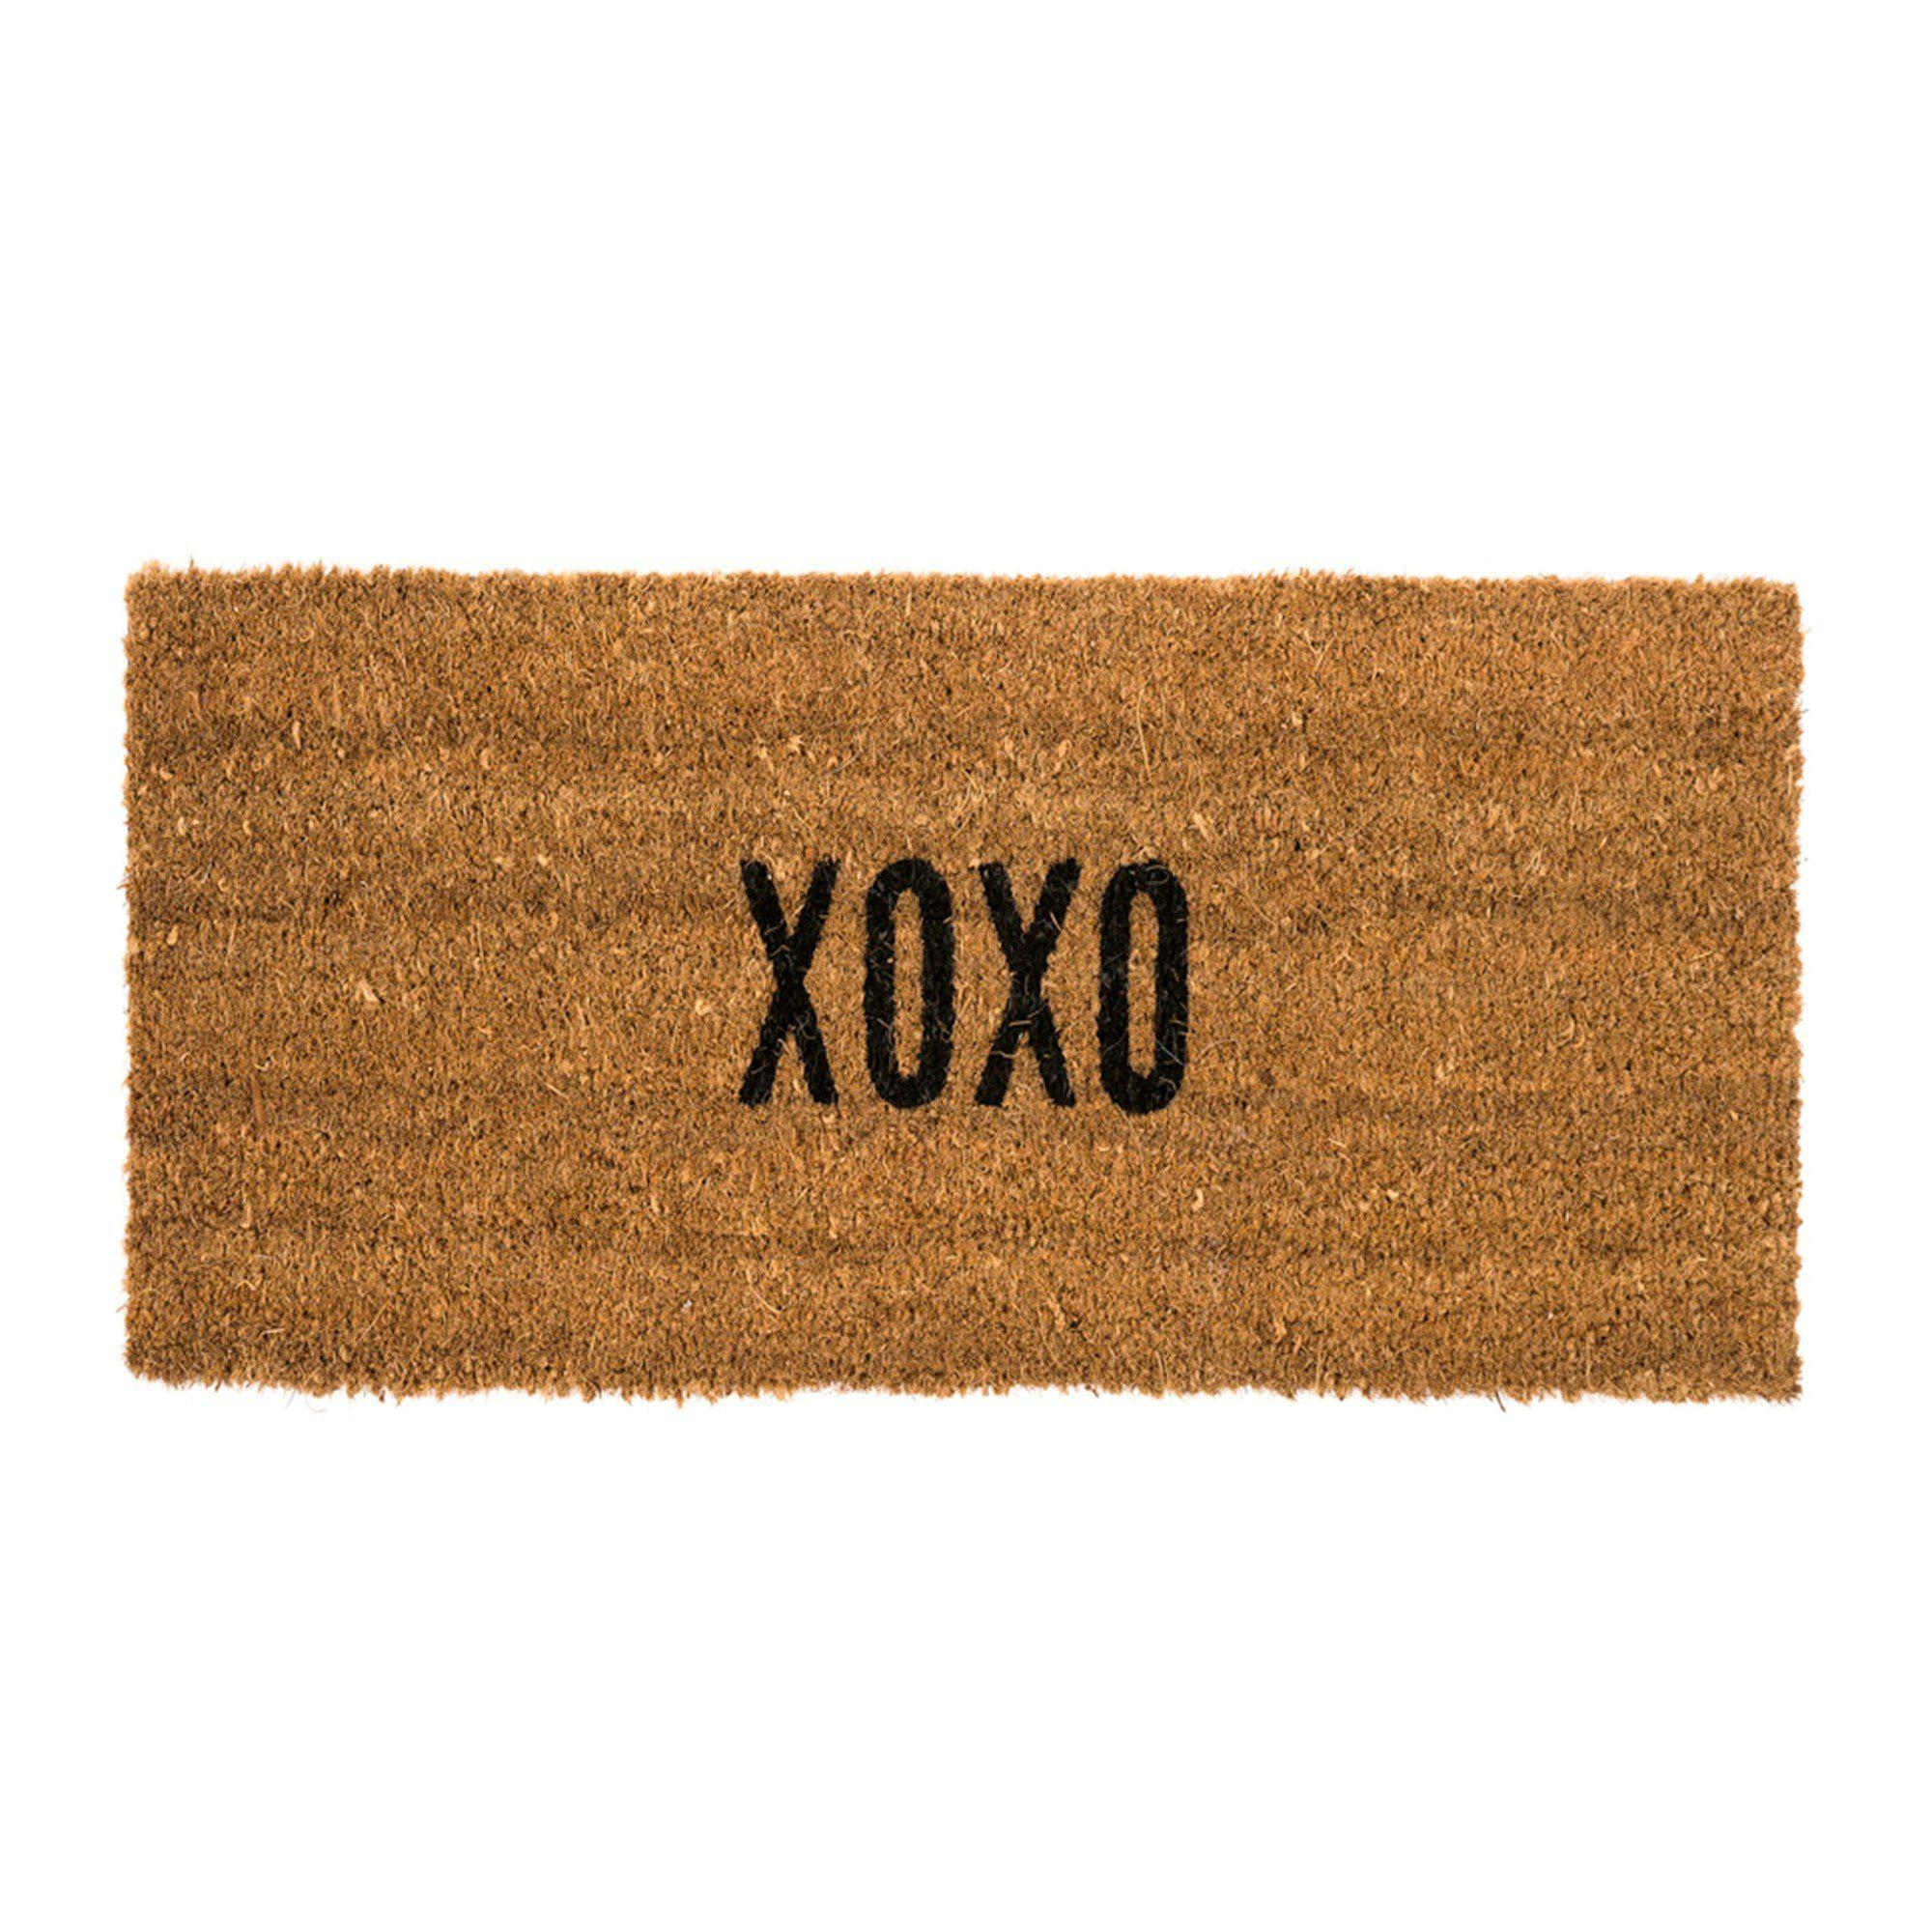 XOXO Door Mat-Decor-Indaba-A Cottage in the City